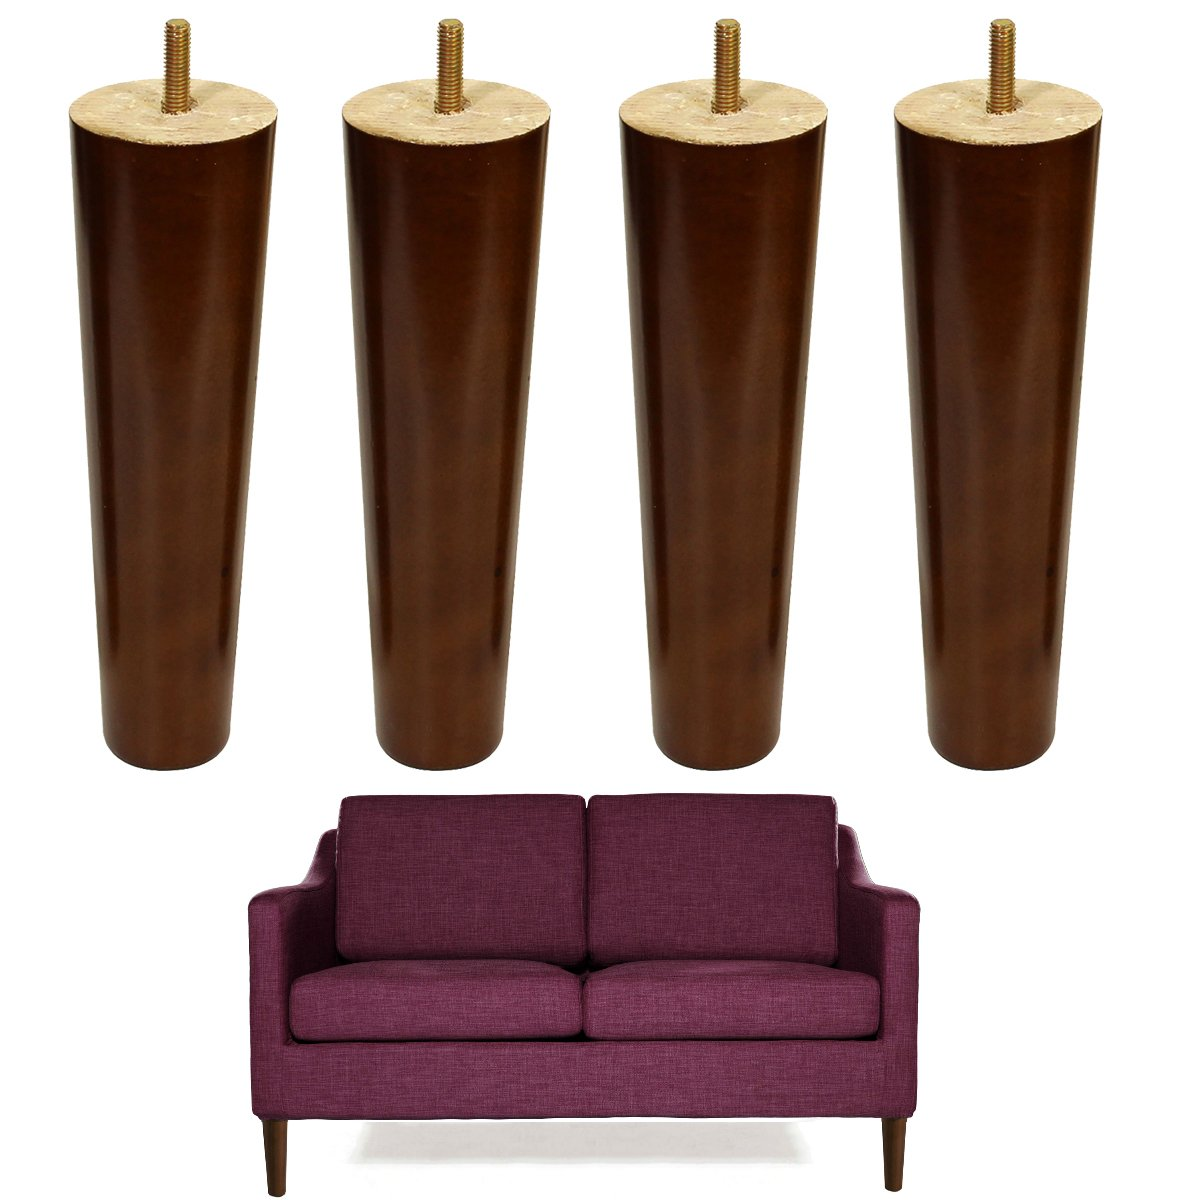 8 Inch Wood Sofa Legs Walnut Finished Furniture Feet Replacement Legs Pack Of 4 M8 Bolt For Coffee Table Ikea Bed Sideboards Cupboard Dresser by Aoryvic